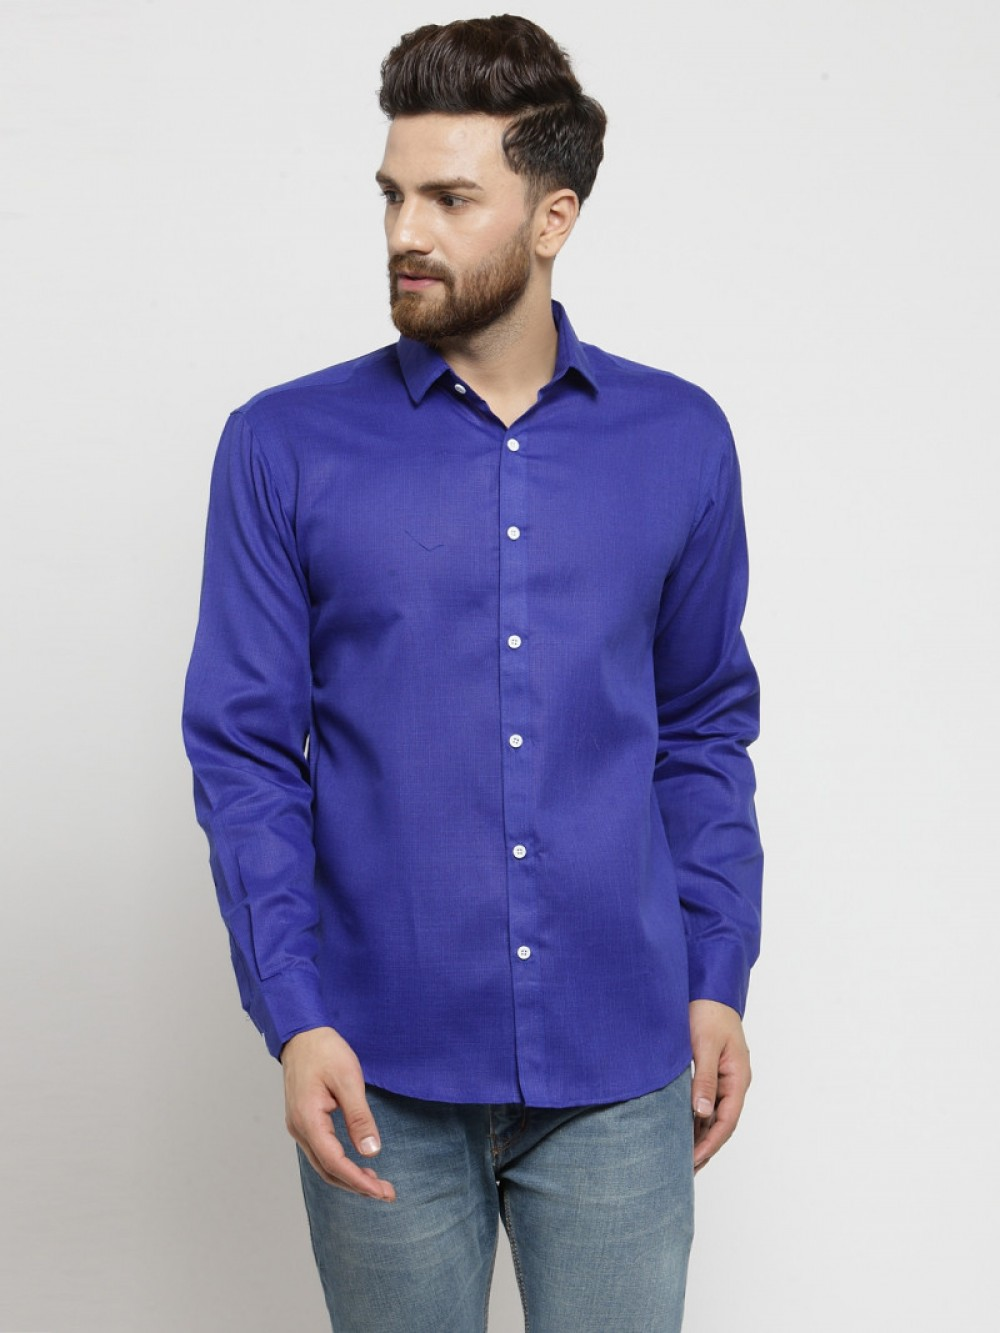 Dark Blue Color Shirt